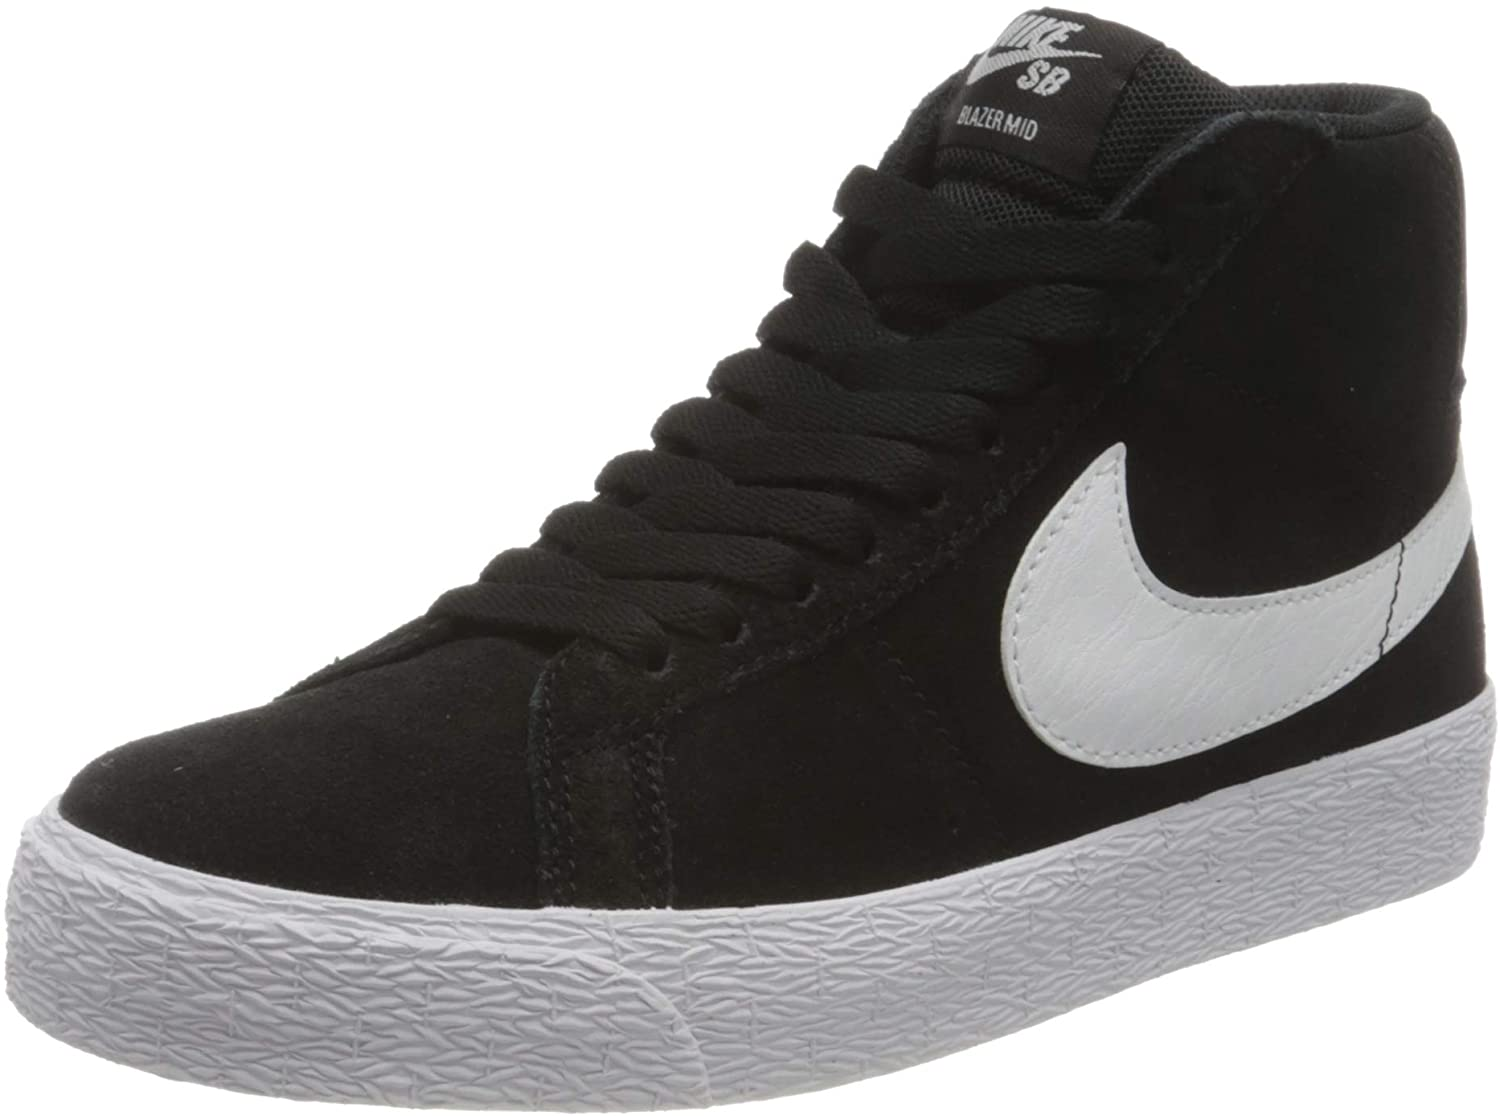 Nike All Don't miss the campaign stores are sold Unisex's Fitness Shoes M US Size Men